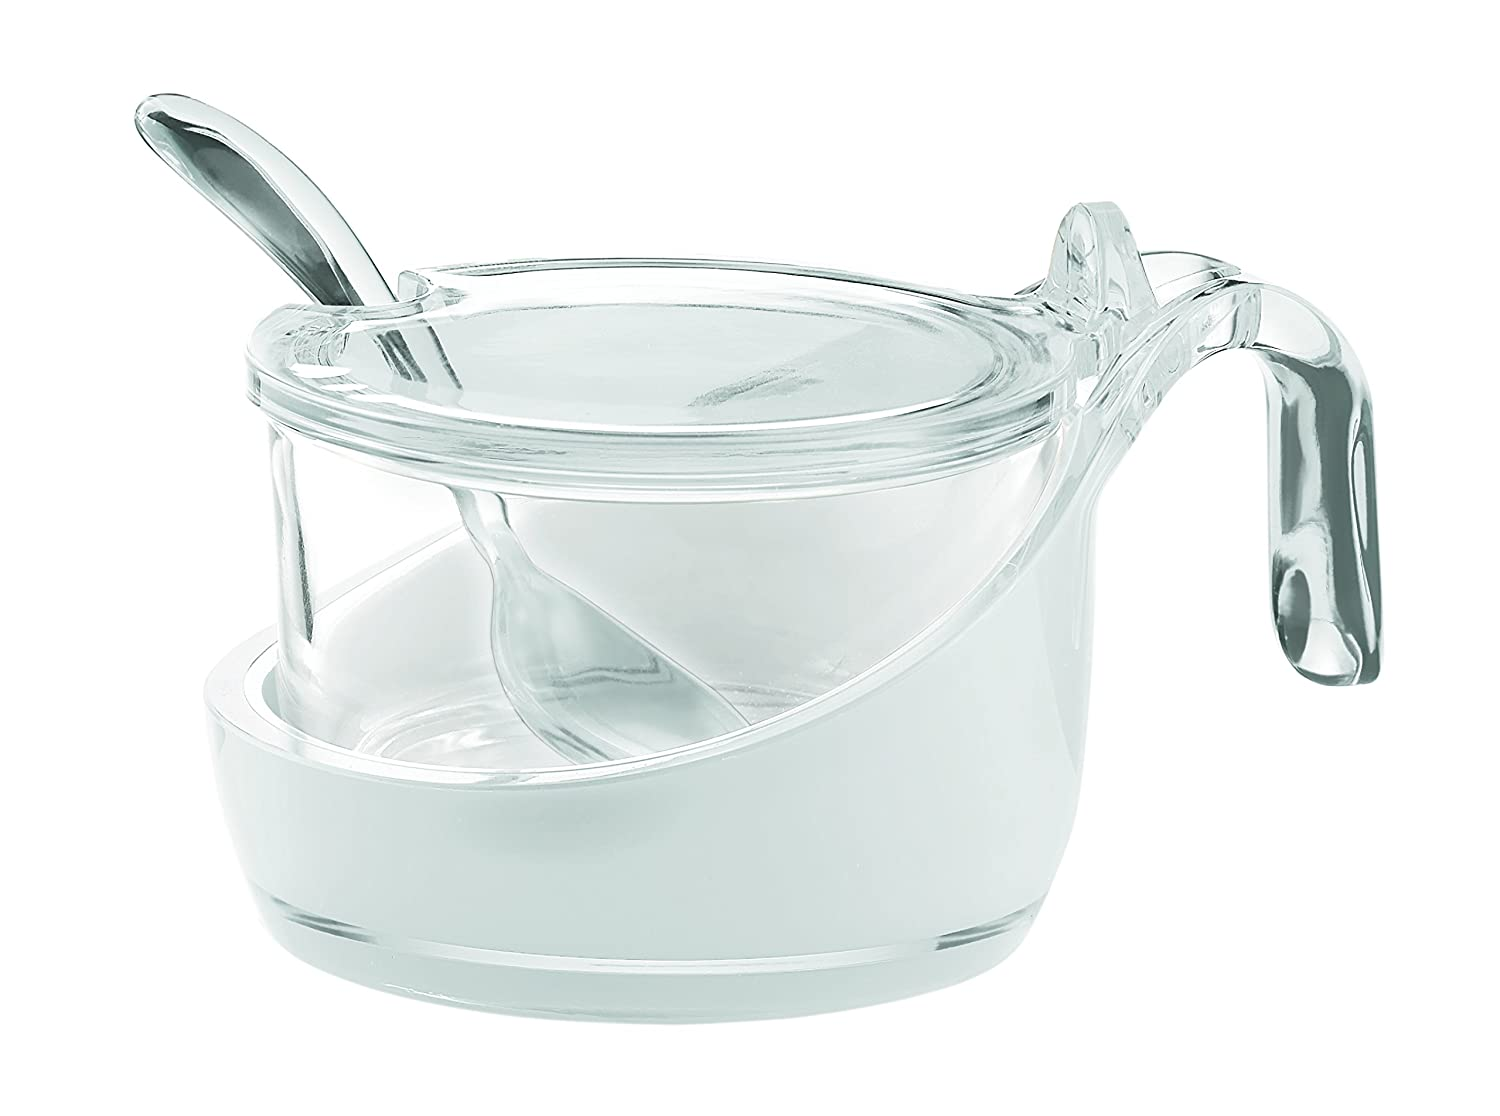 Guzzini Fratelli Vintage, Two-tone parmesan server/preserve jar/sugar bowl with teaspoon, SAN|Glass FRATELLI GUZZINI SPA 24890000